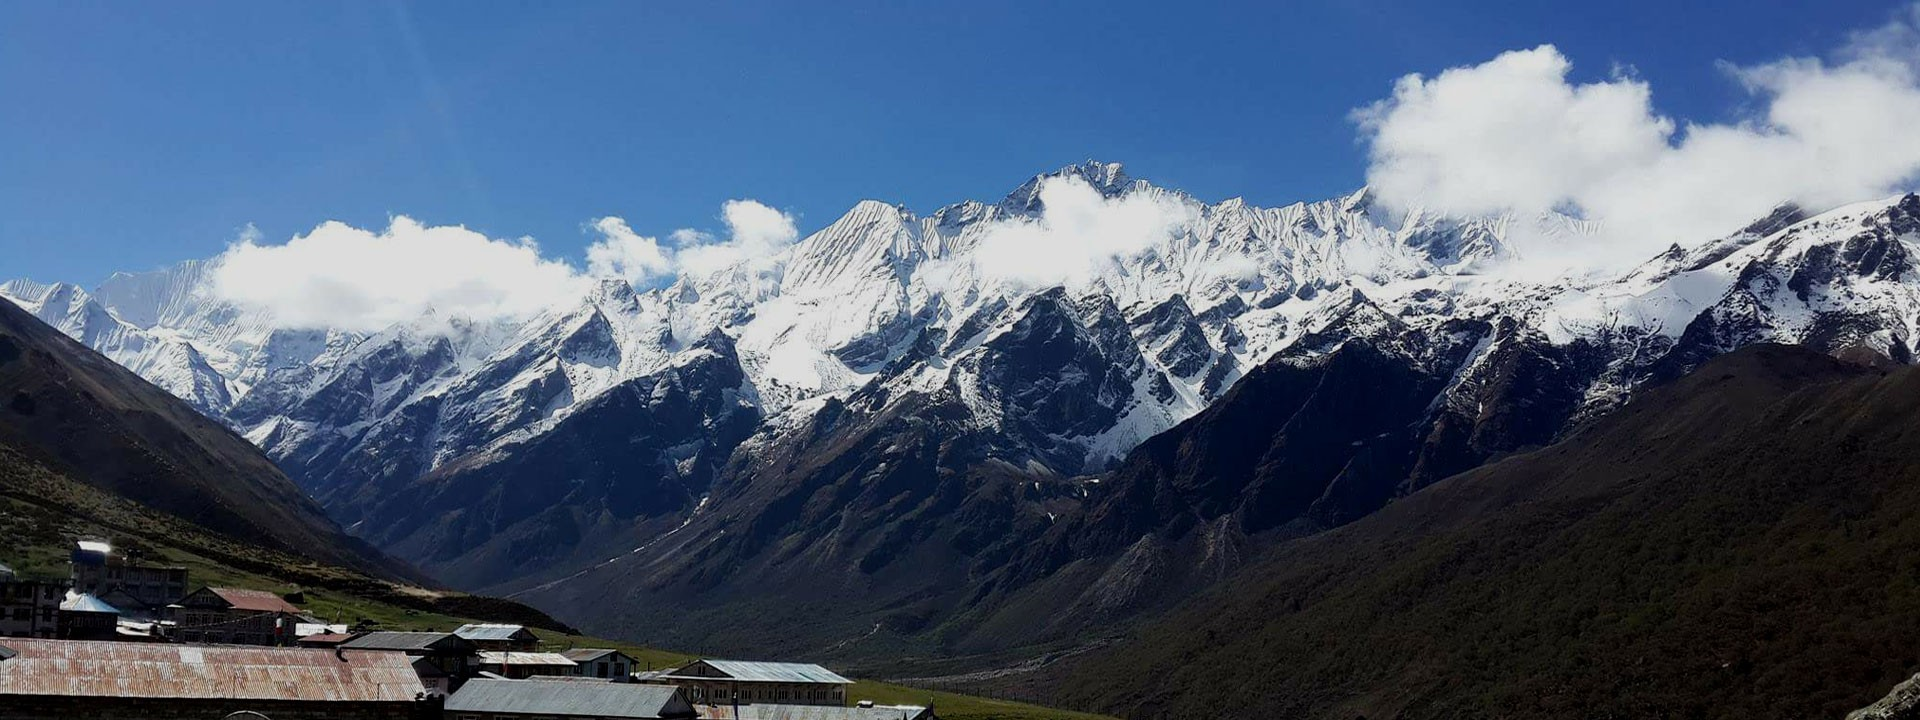 Tamang Heritage Trail and Langtang Valley